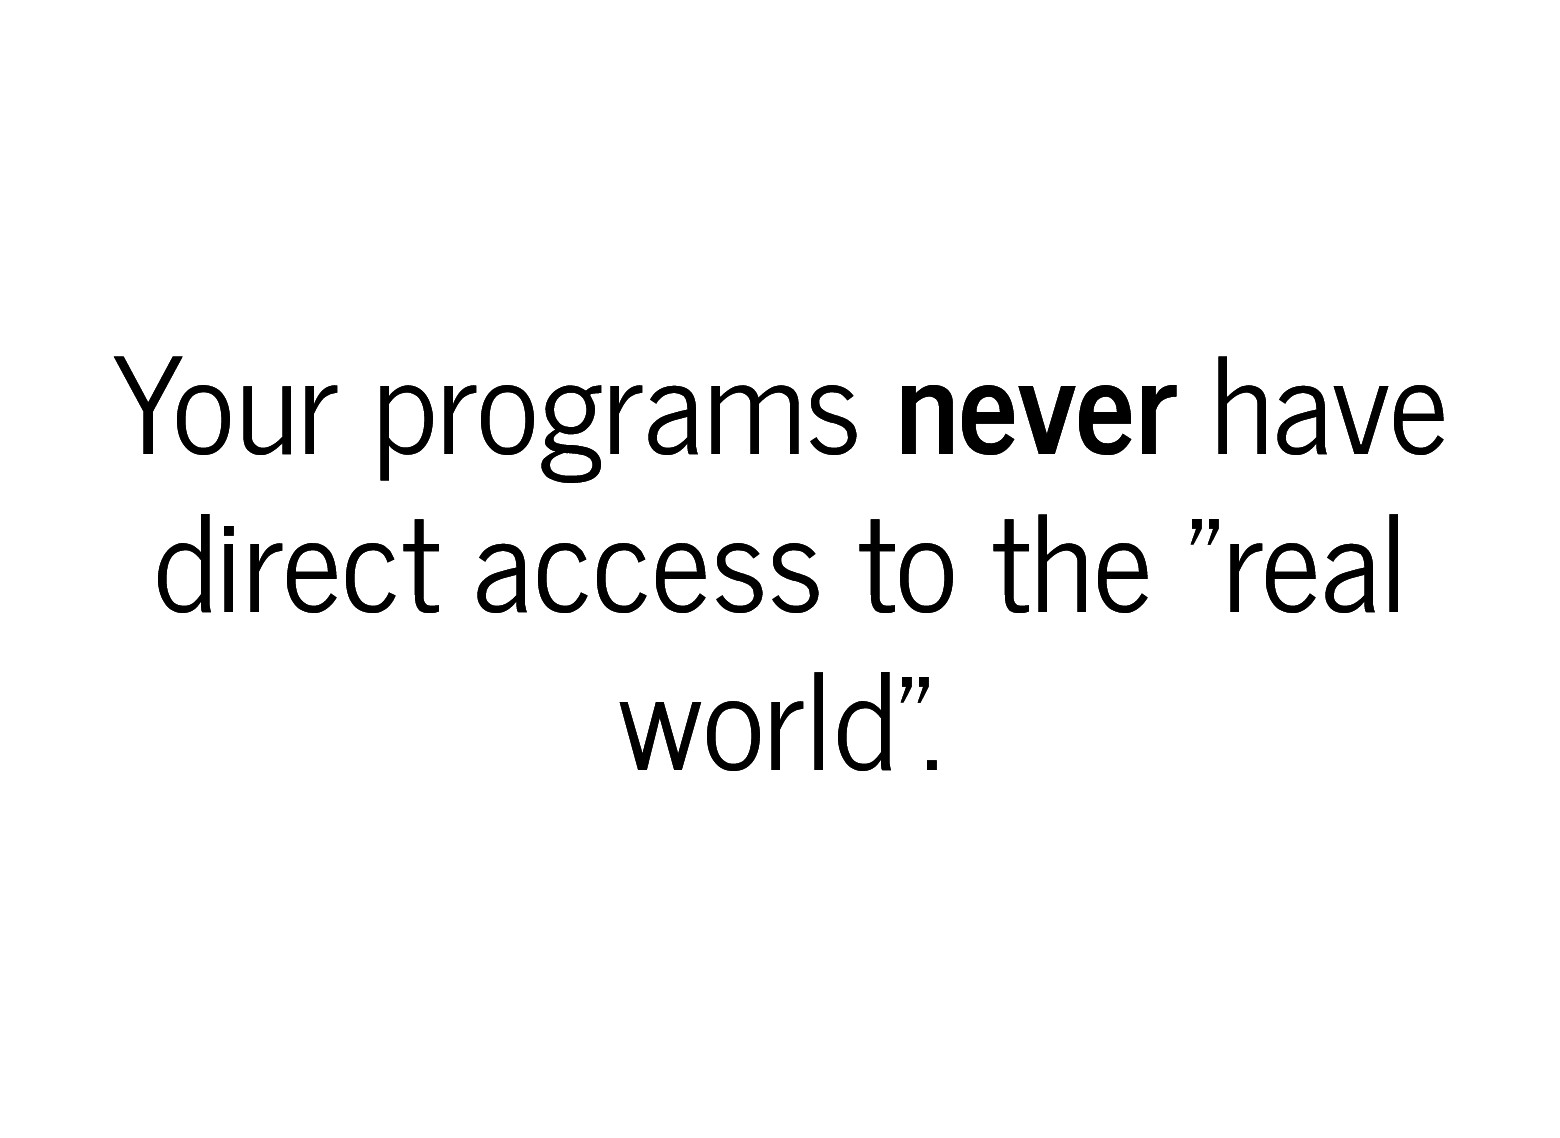 Your programs Your programs never never have ha...